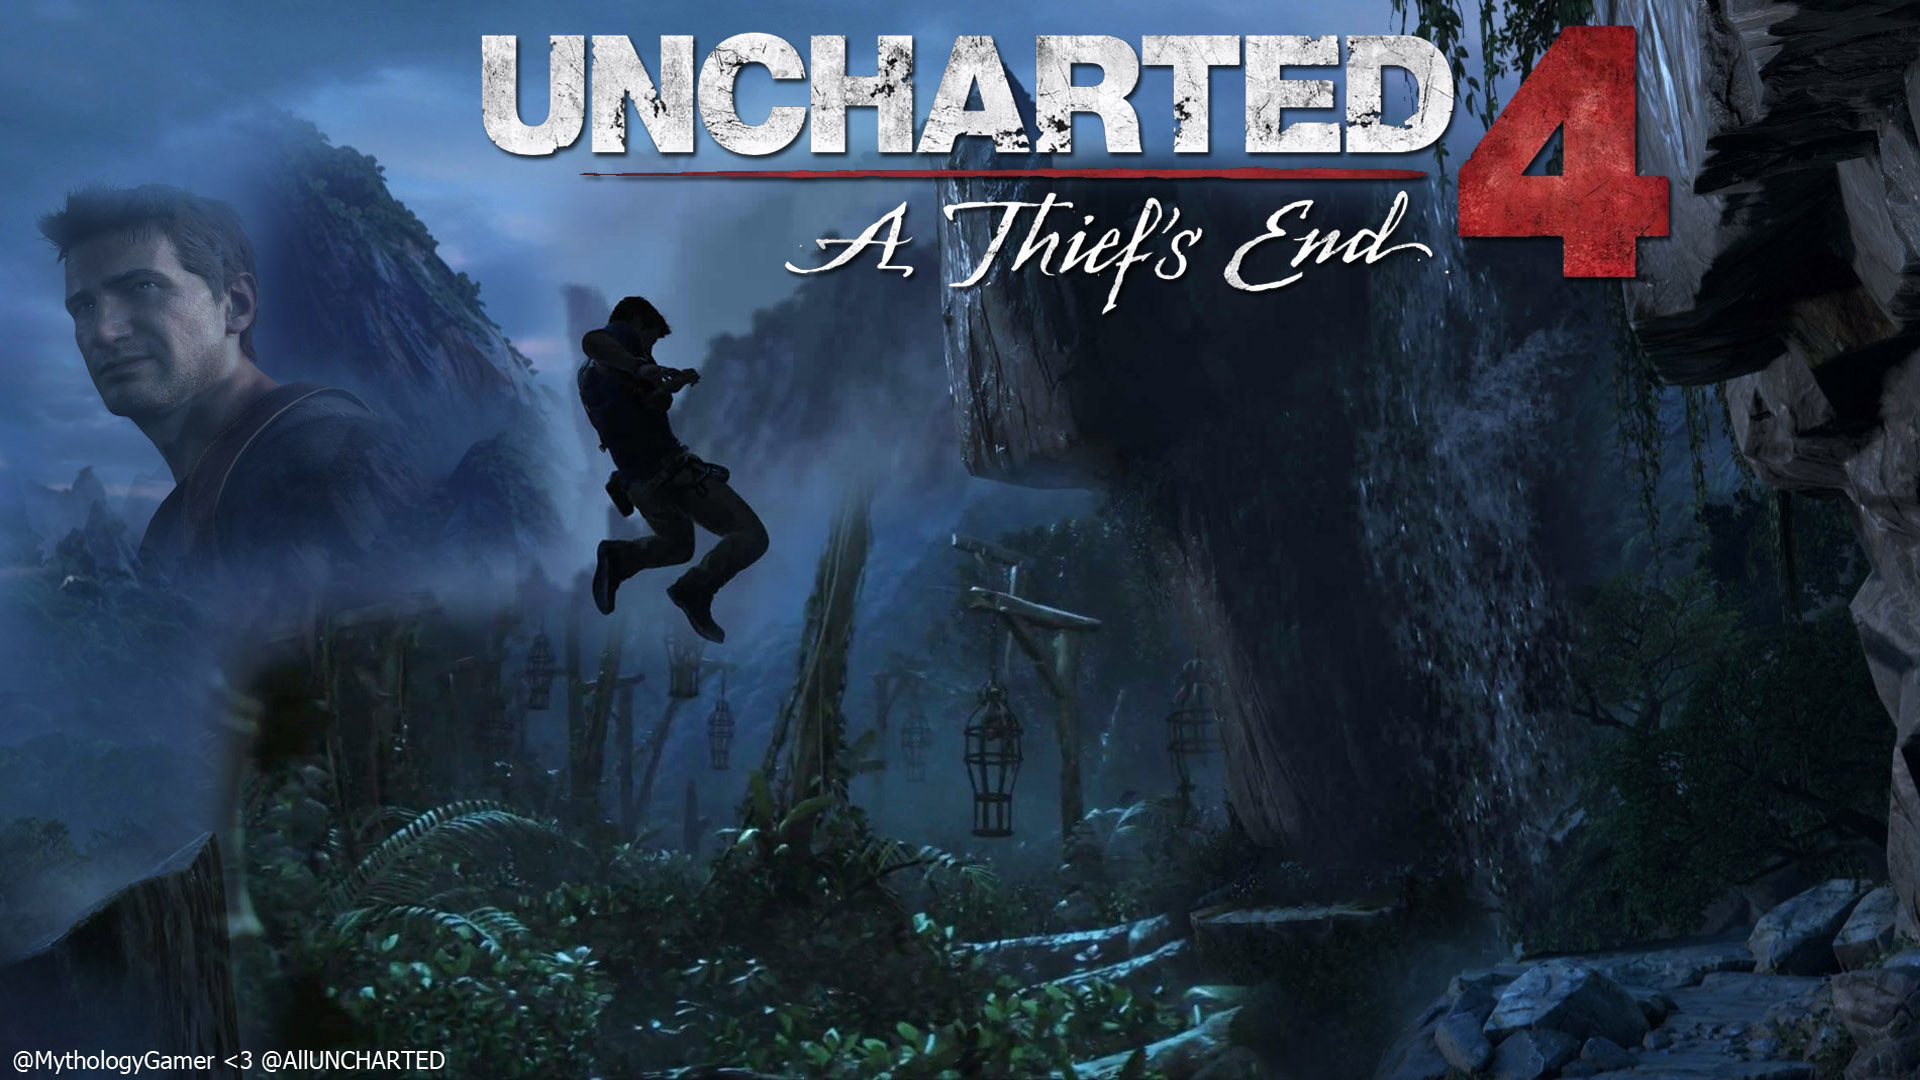 Uncharted 4 wallpapers high resolution and quality download - Uncharted 4 wallpaper ps4 ...